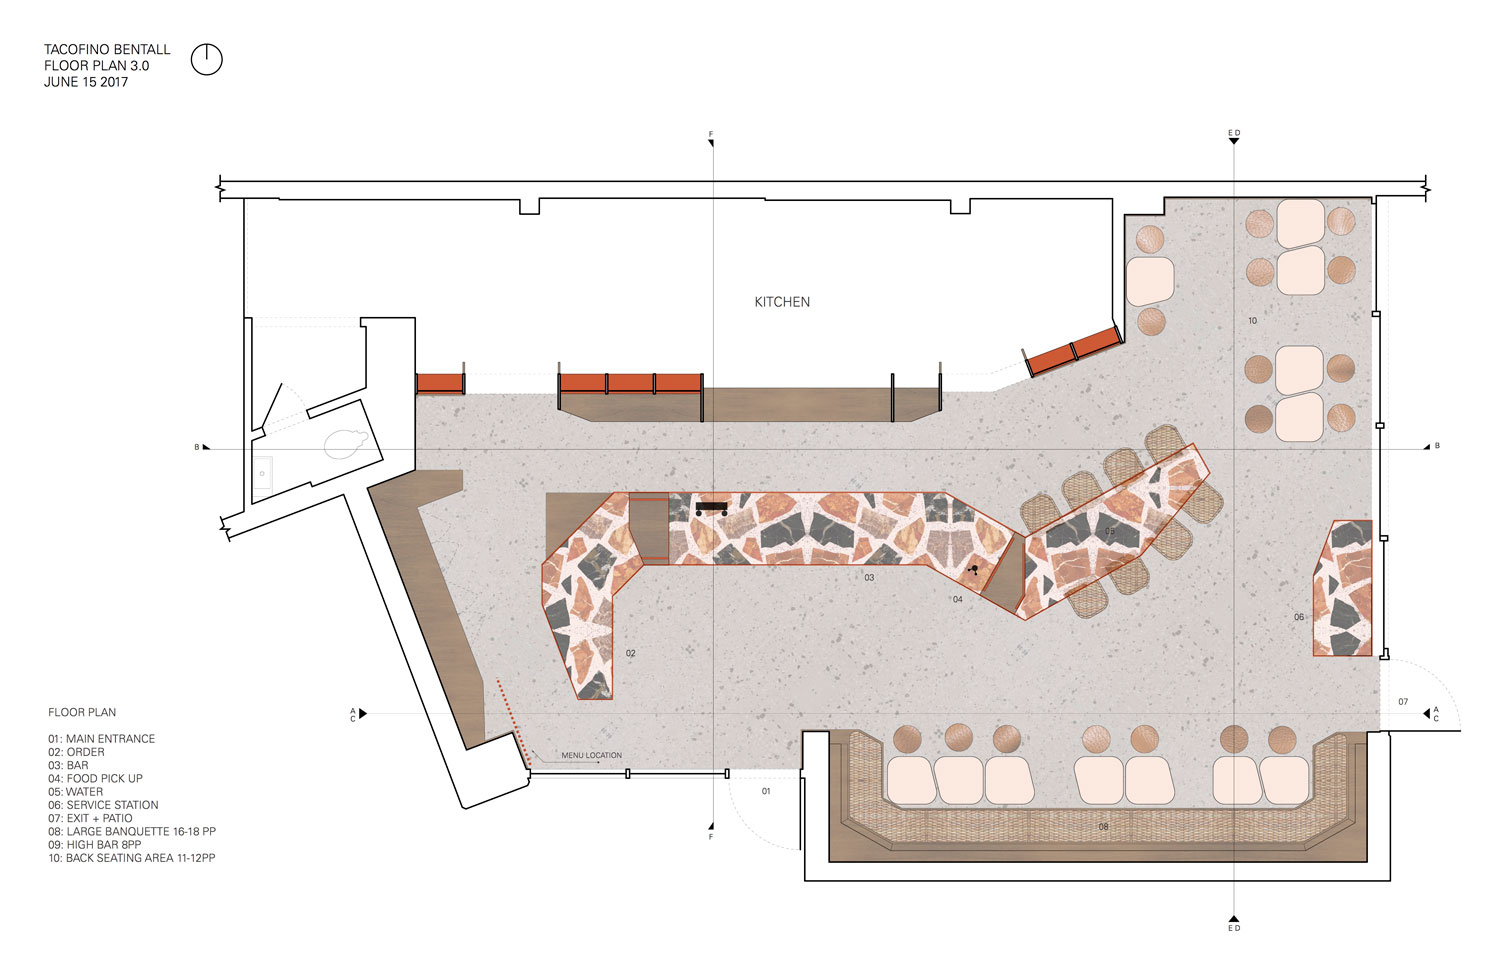 TACOFINO_BENTAL_FLOORPLAN